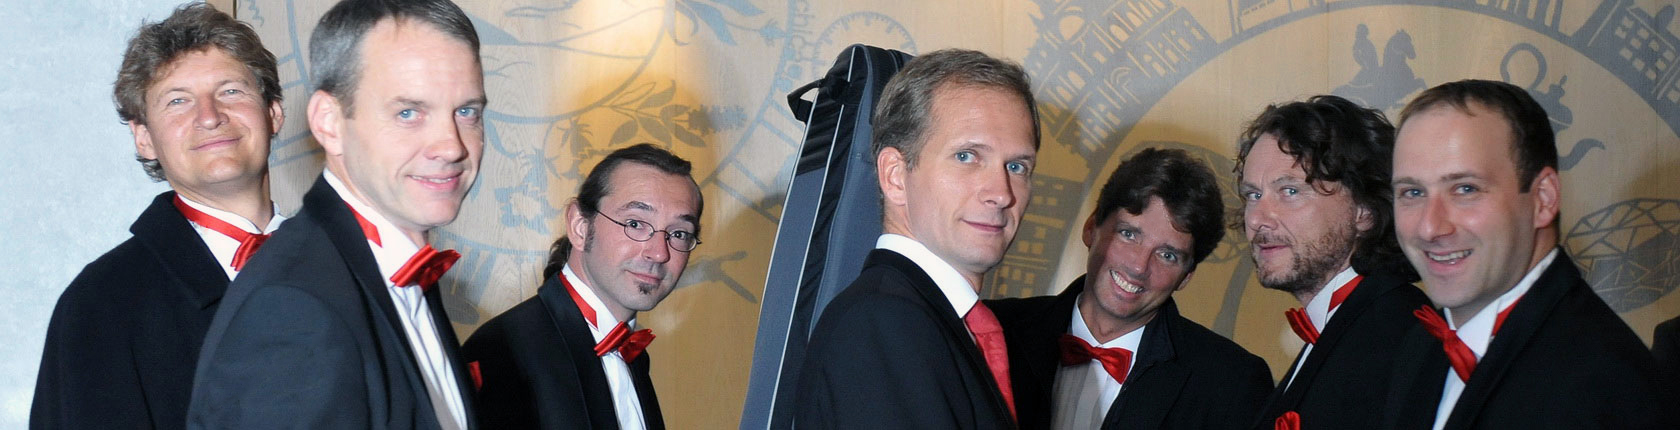 The Gala Band of The Dresdner Salonorchester